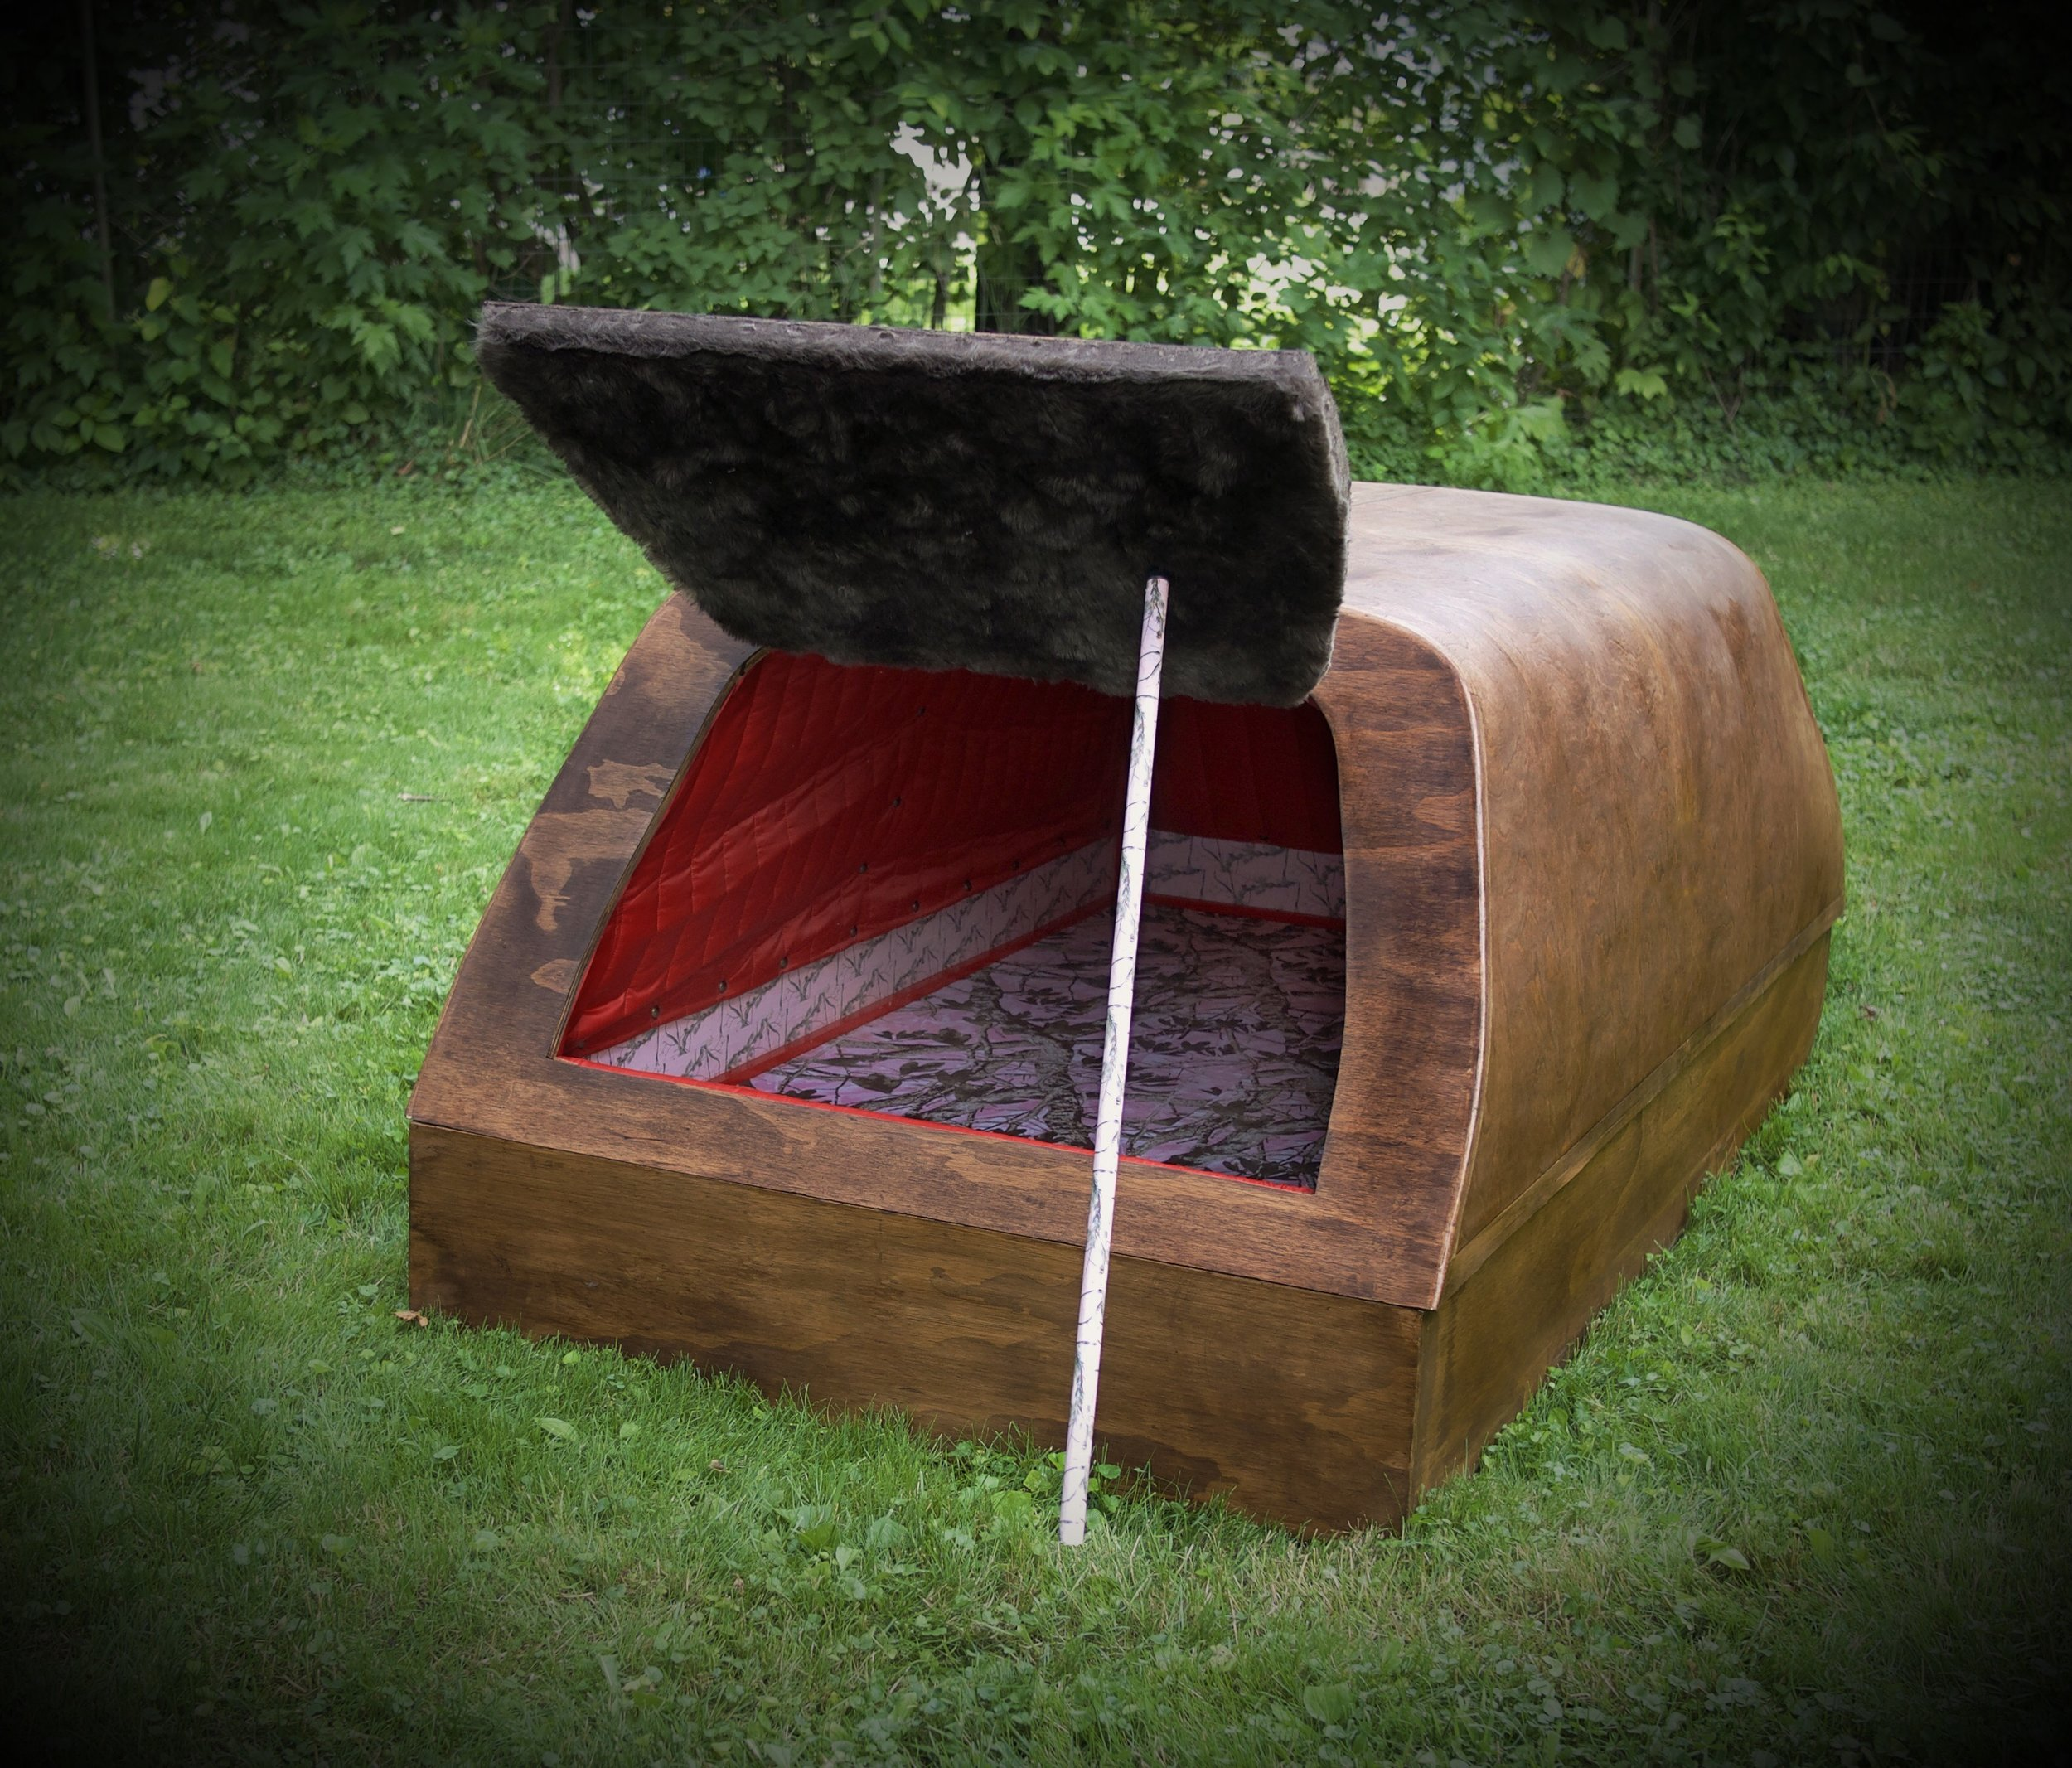 """Survival Ark for the Volvo XC90   32"""" x 42"""" x 76""""  Wood, upholstery, survival gear for a family of three  (2018)"""